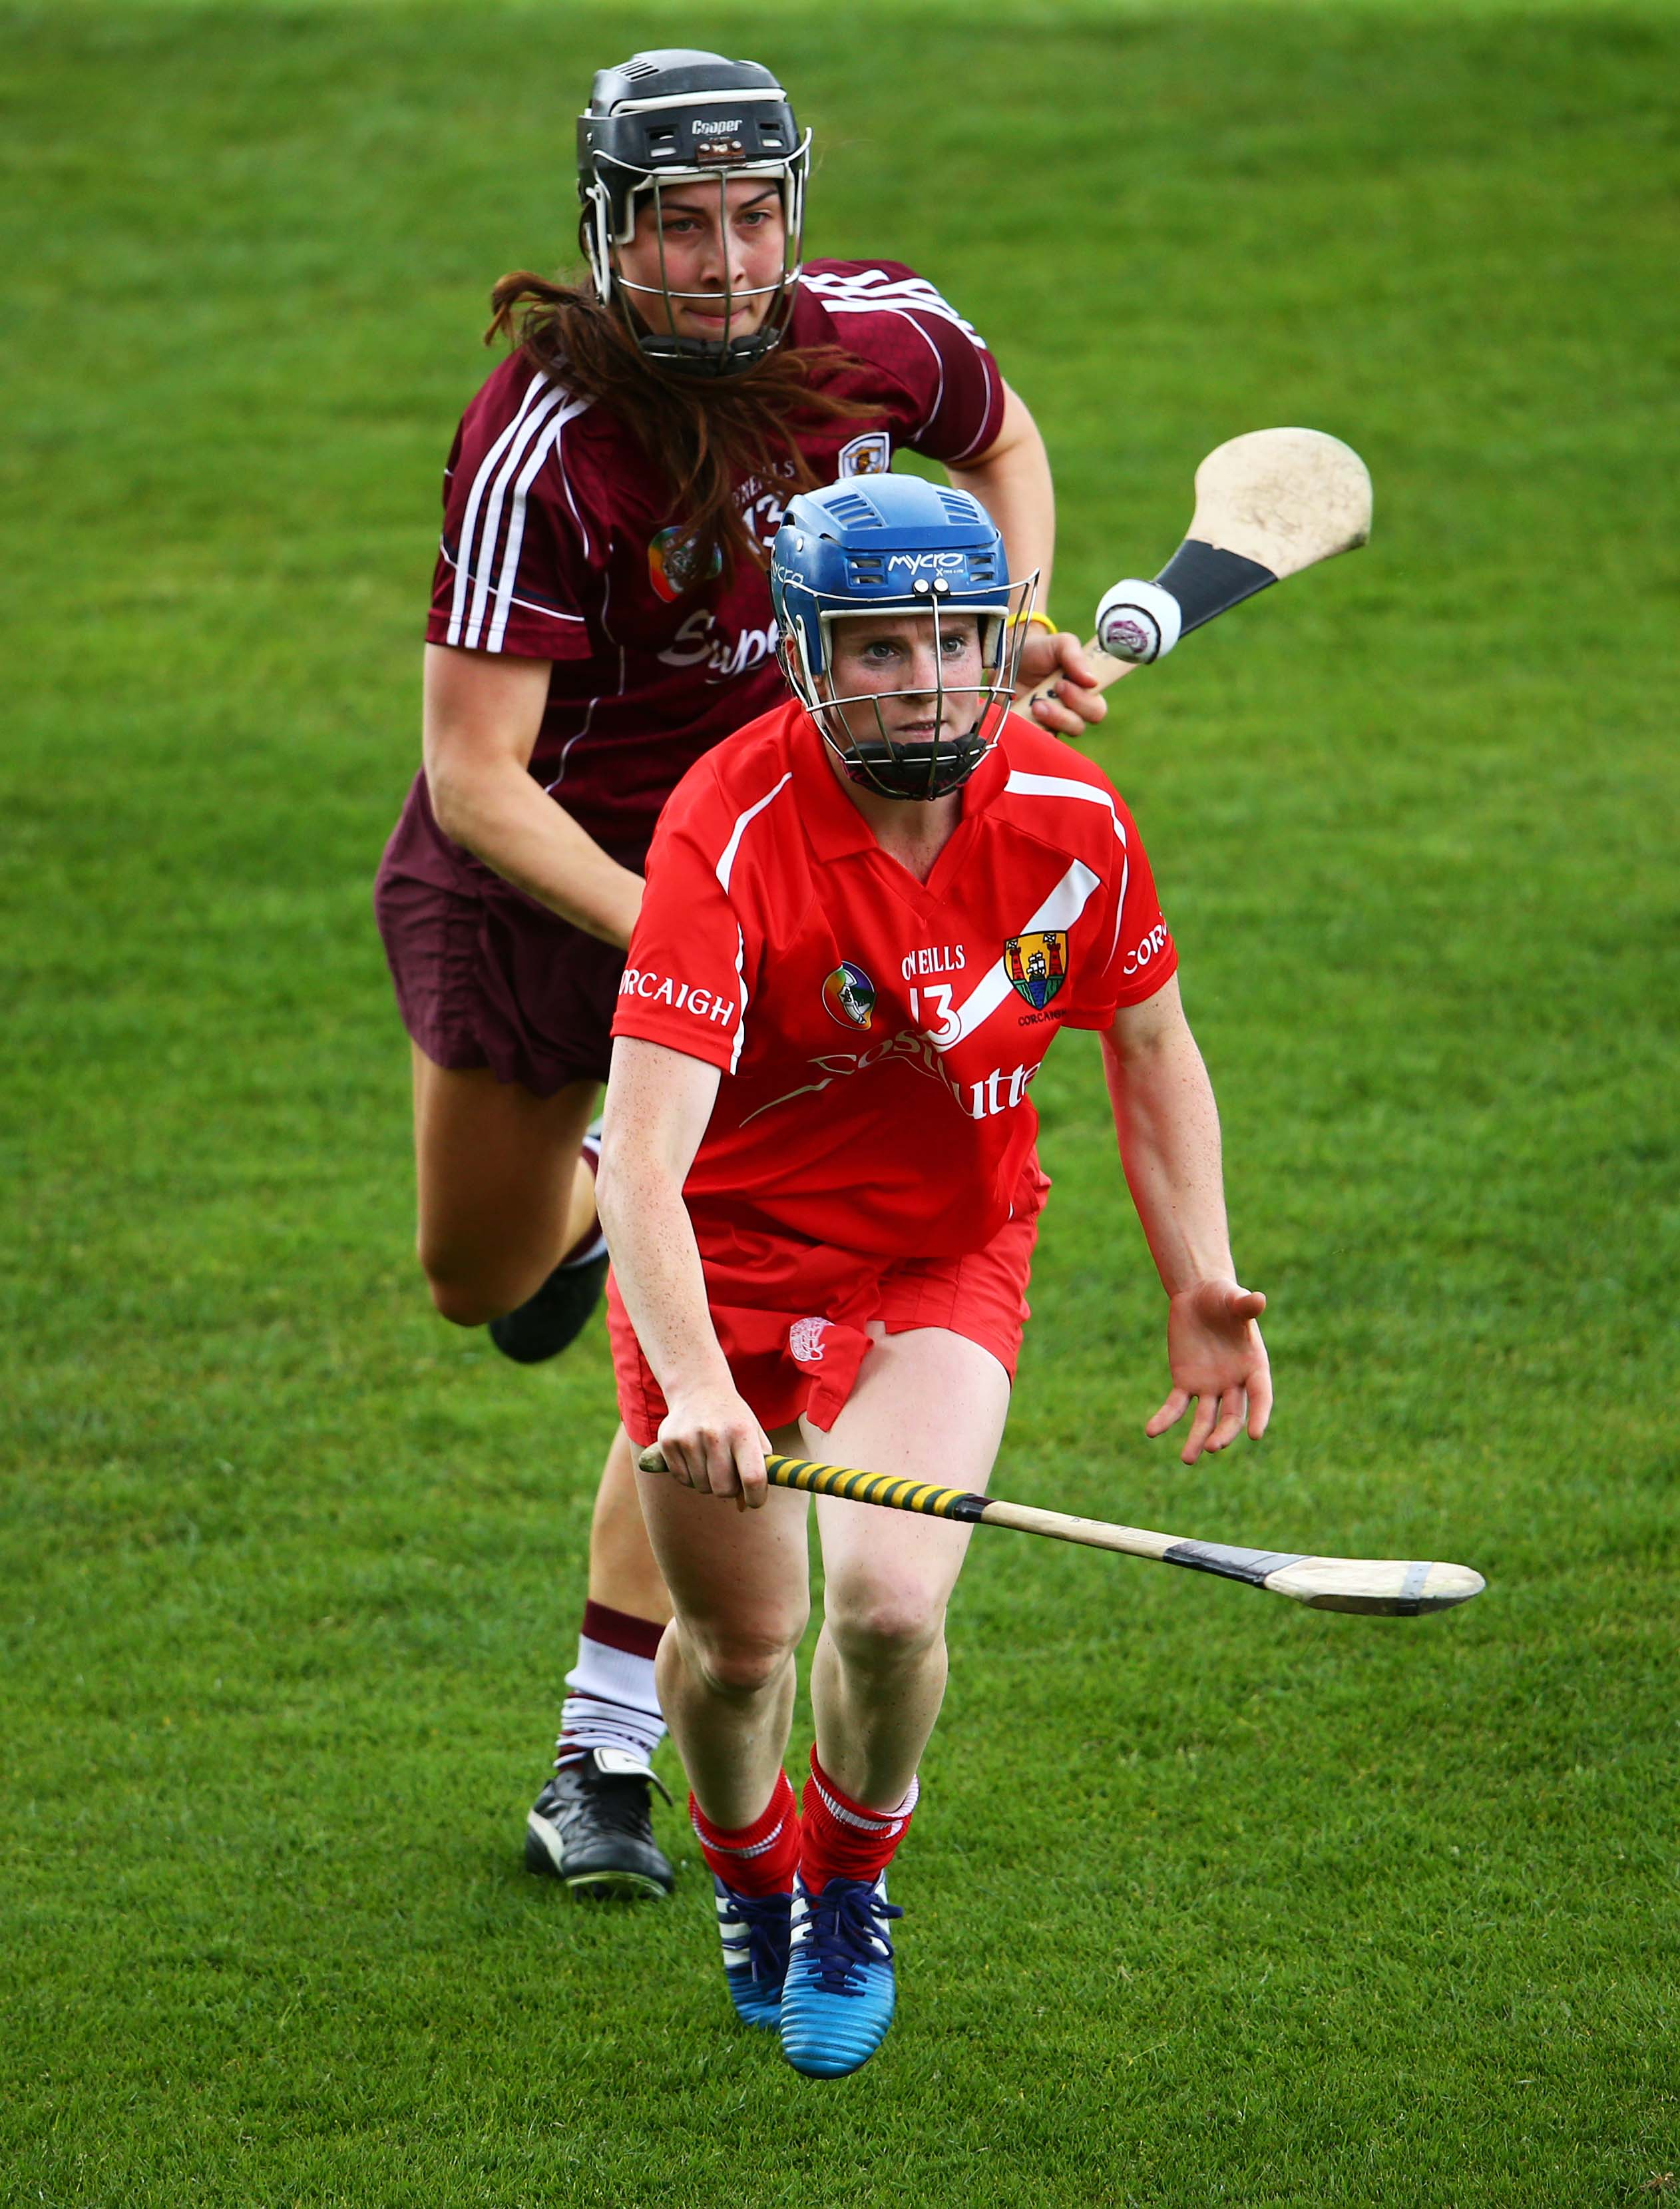 REPRO FREE***PRESS RELEASE NO REPRODUCTION FEE*** Liberty Insurance Camogie Championship Round 1, OÕConnor Park, Tullamore, Offaly 20/6/2015 Galway vs Cork Galway's Jessica Gill and Briege Corkery of Cork Mandatory Credit ©INPHO/Cathal Noonan